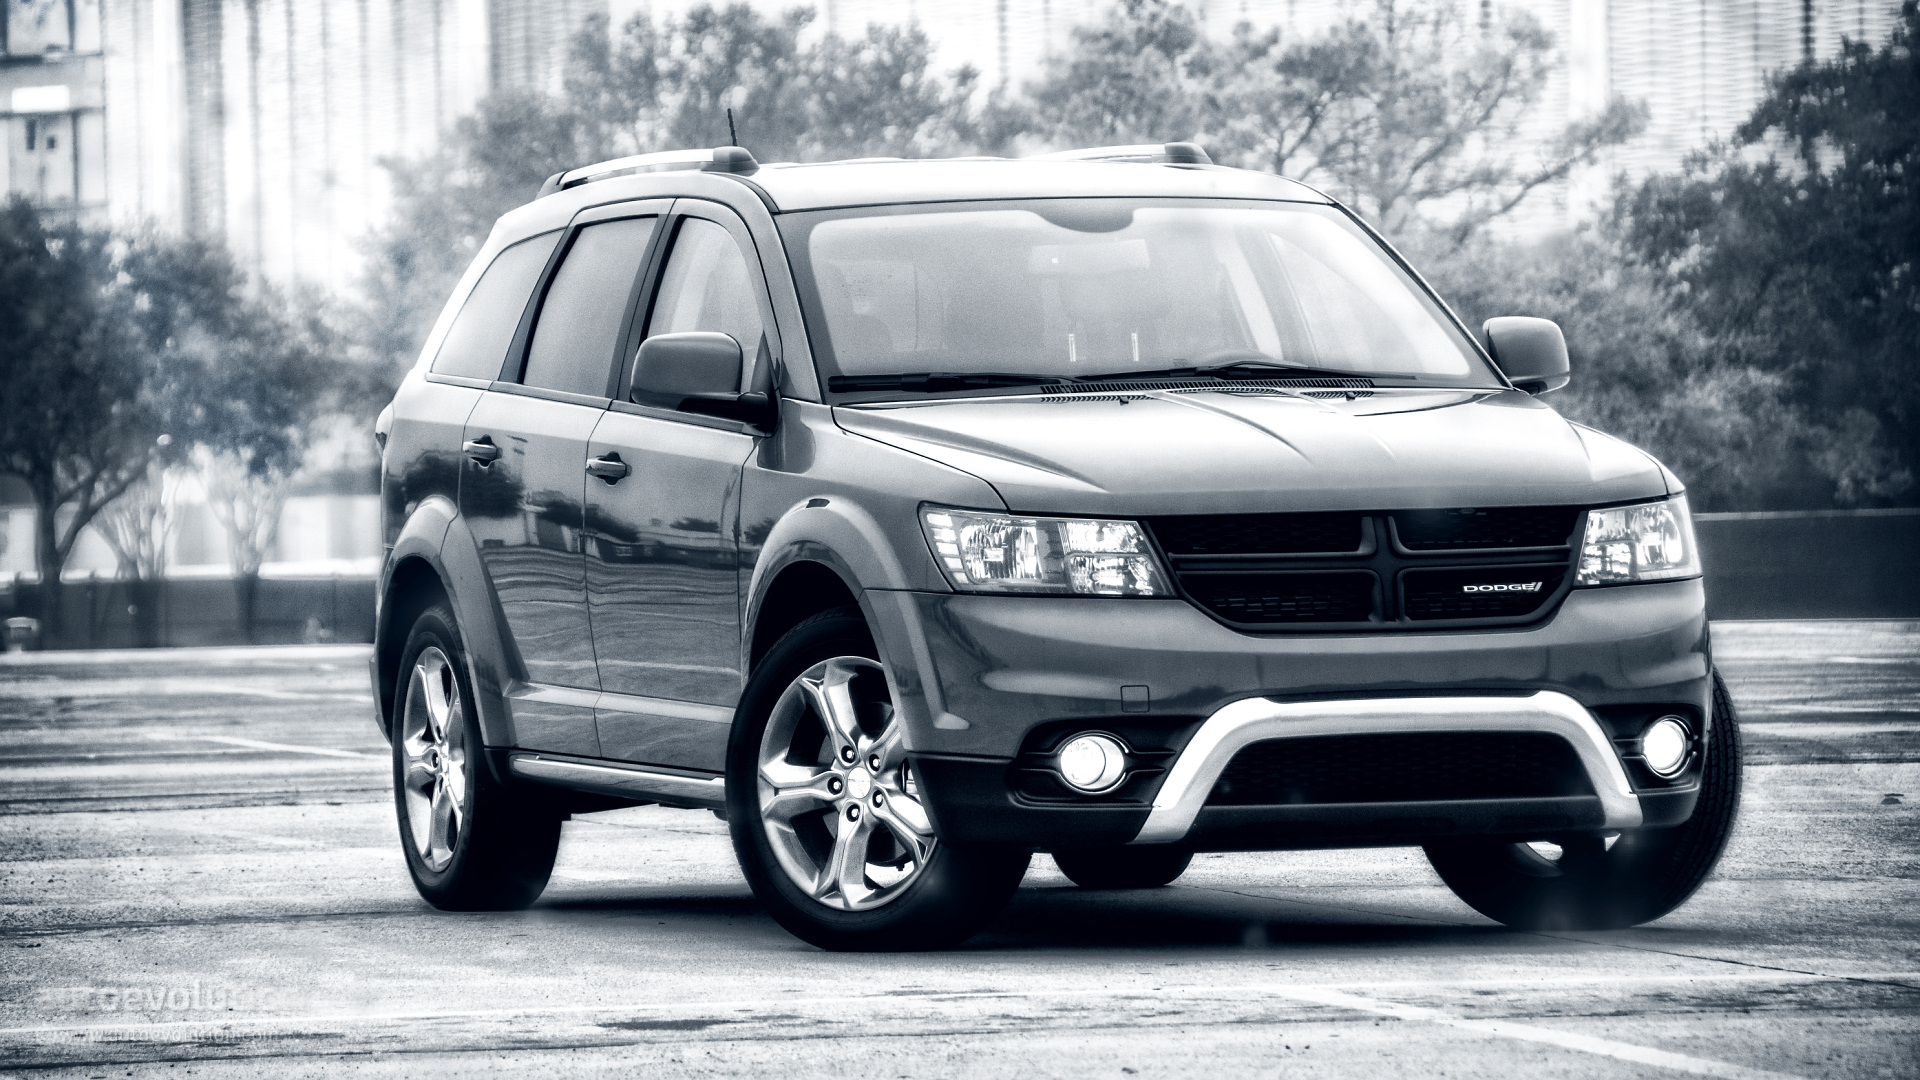 2015 dodge journey crossroad hd wallpapers the budget family man autoevolution. Black Bedroom Furniture Sets. Home Design Ideas